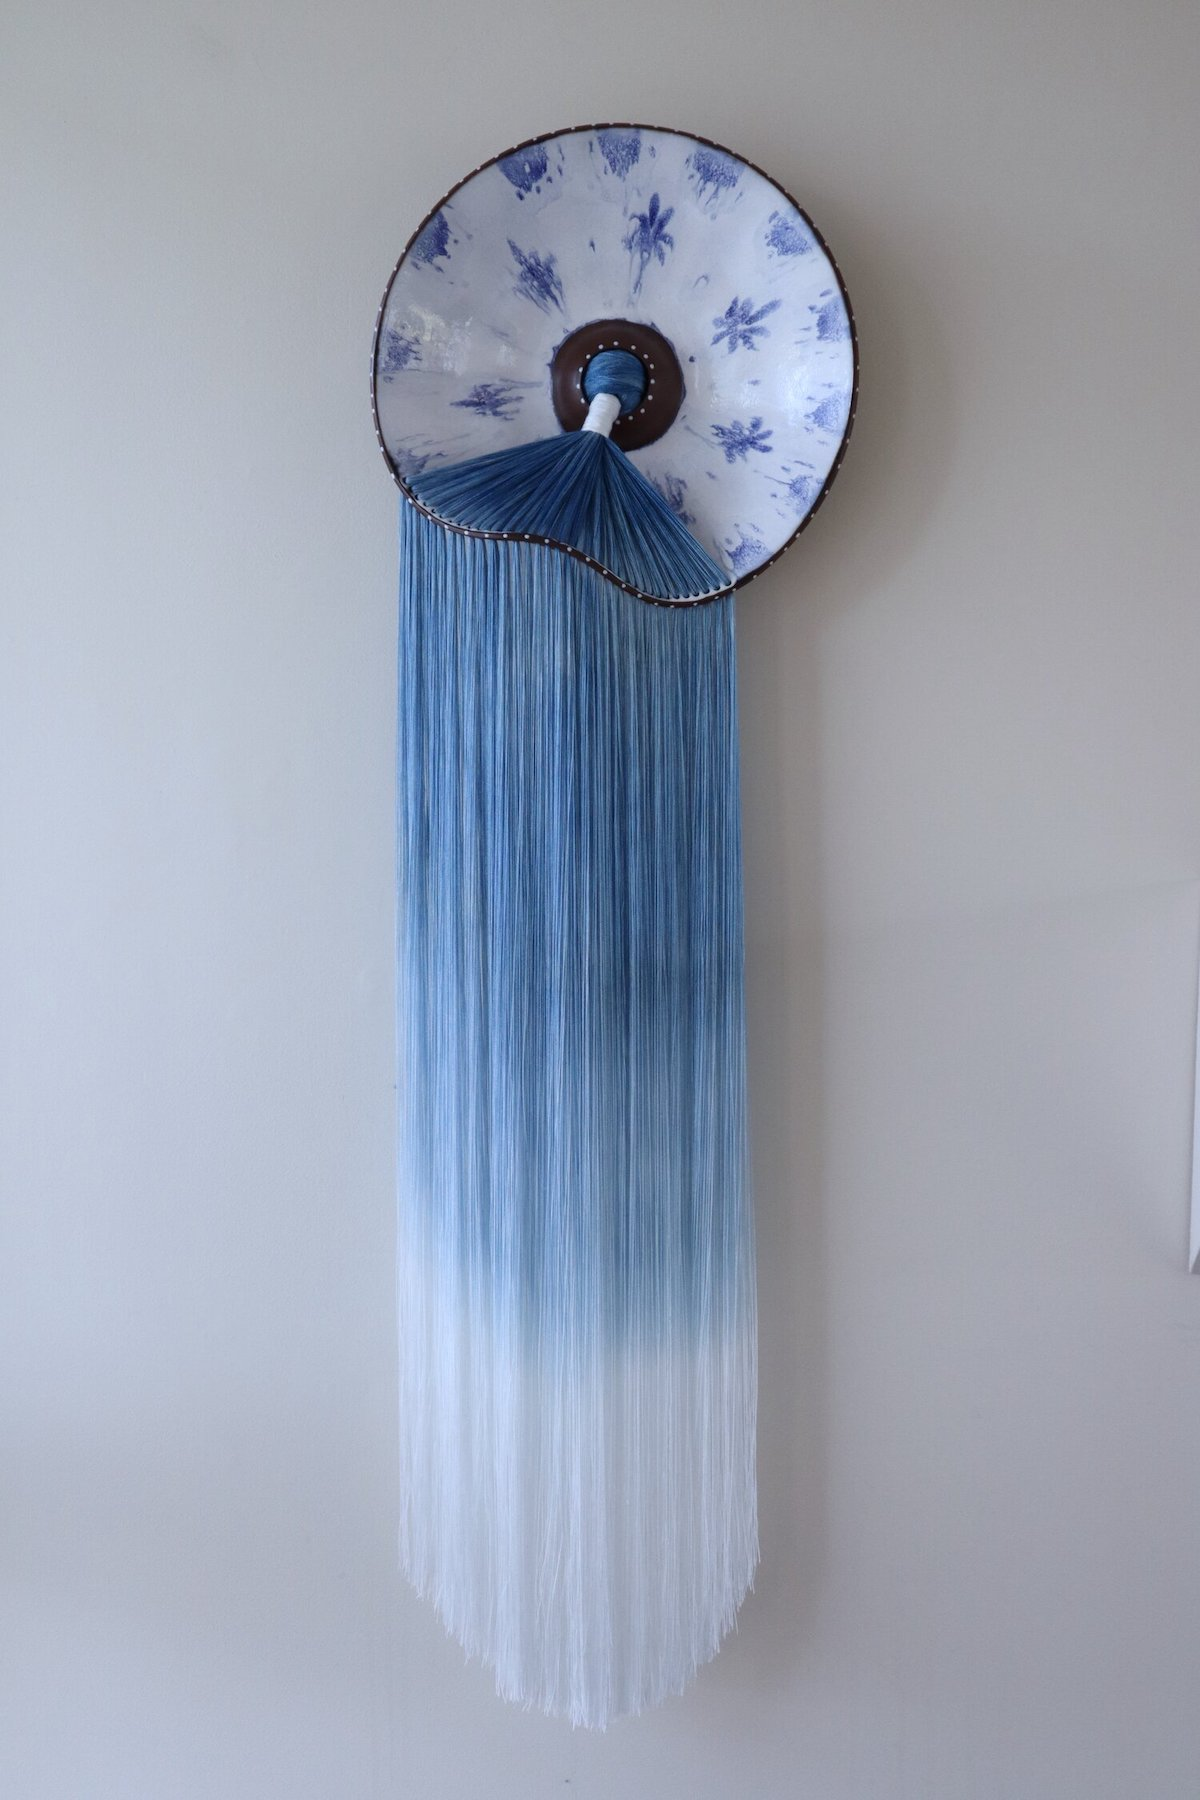 Loose Fiber and Clay Sculptural Installation